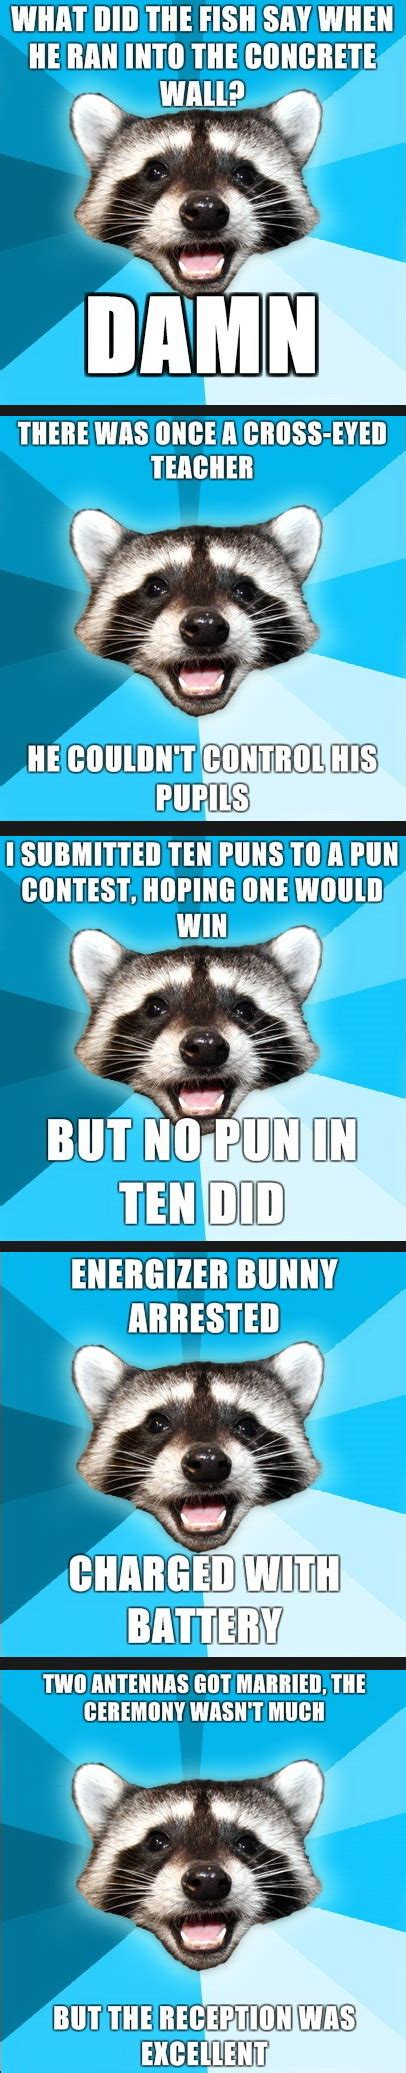 Raccoon Meme - pics that make you lol everytime part 2 page 160 bodybuilding com forums